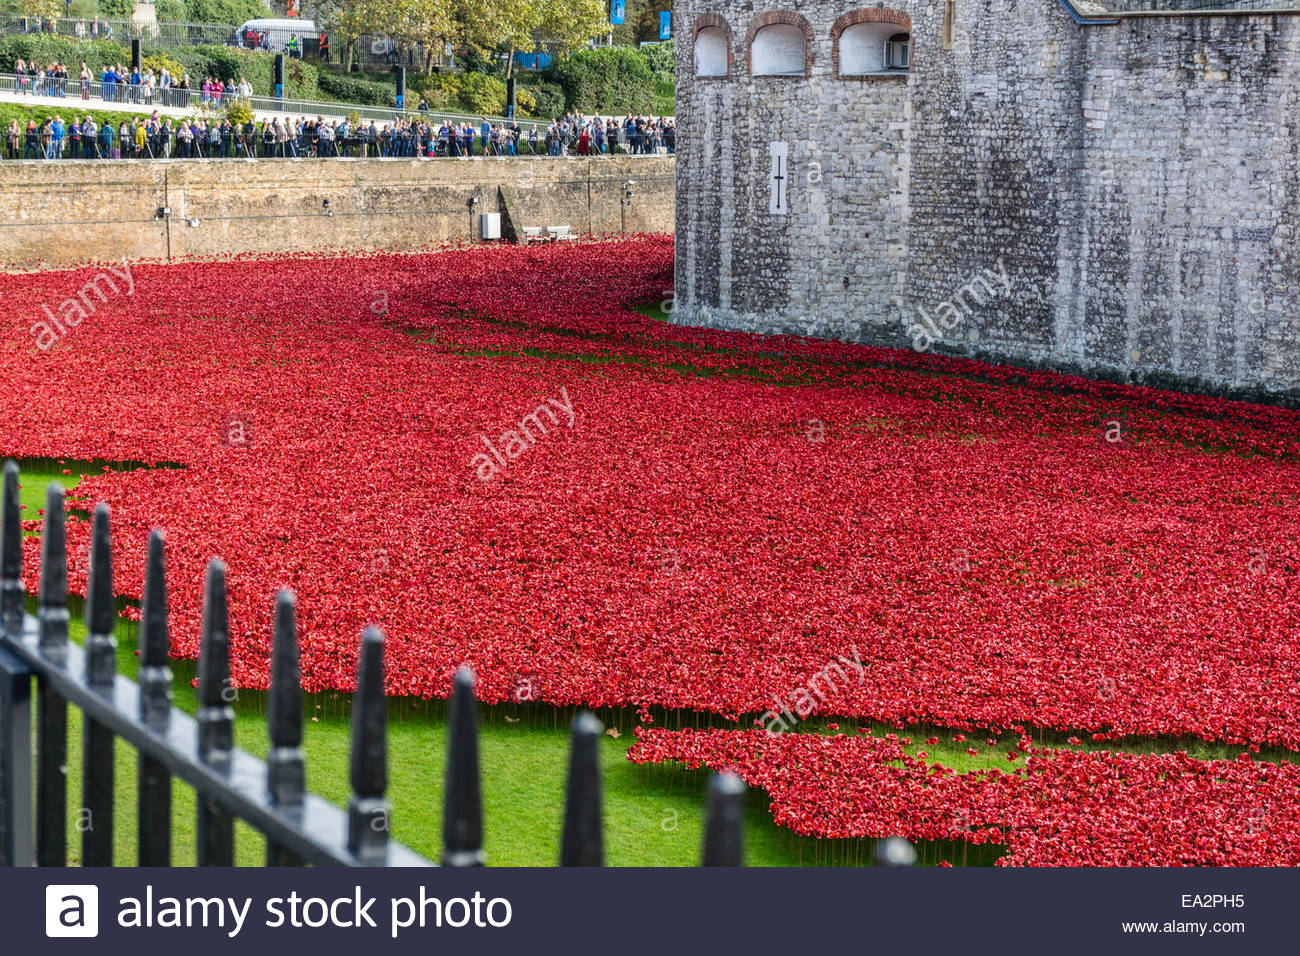 The Blood Swept Lands and Seas of Red art installation at the Tower of London - Stock Image